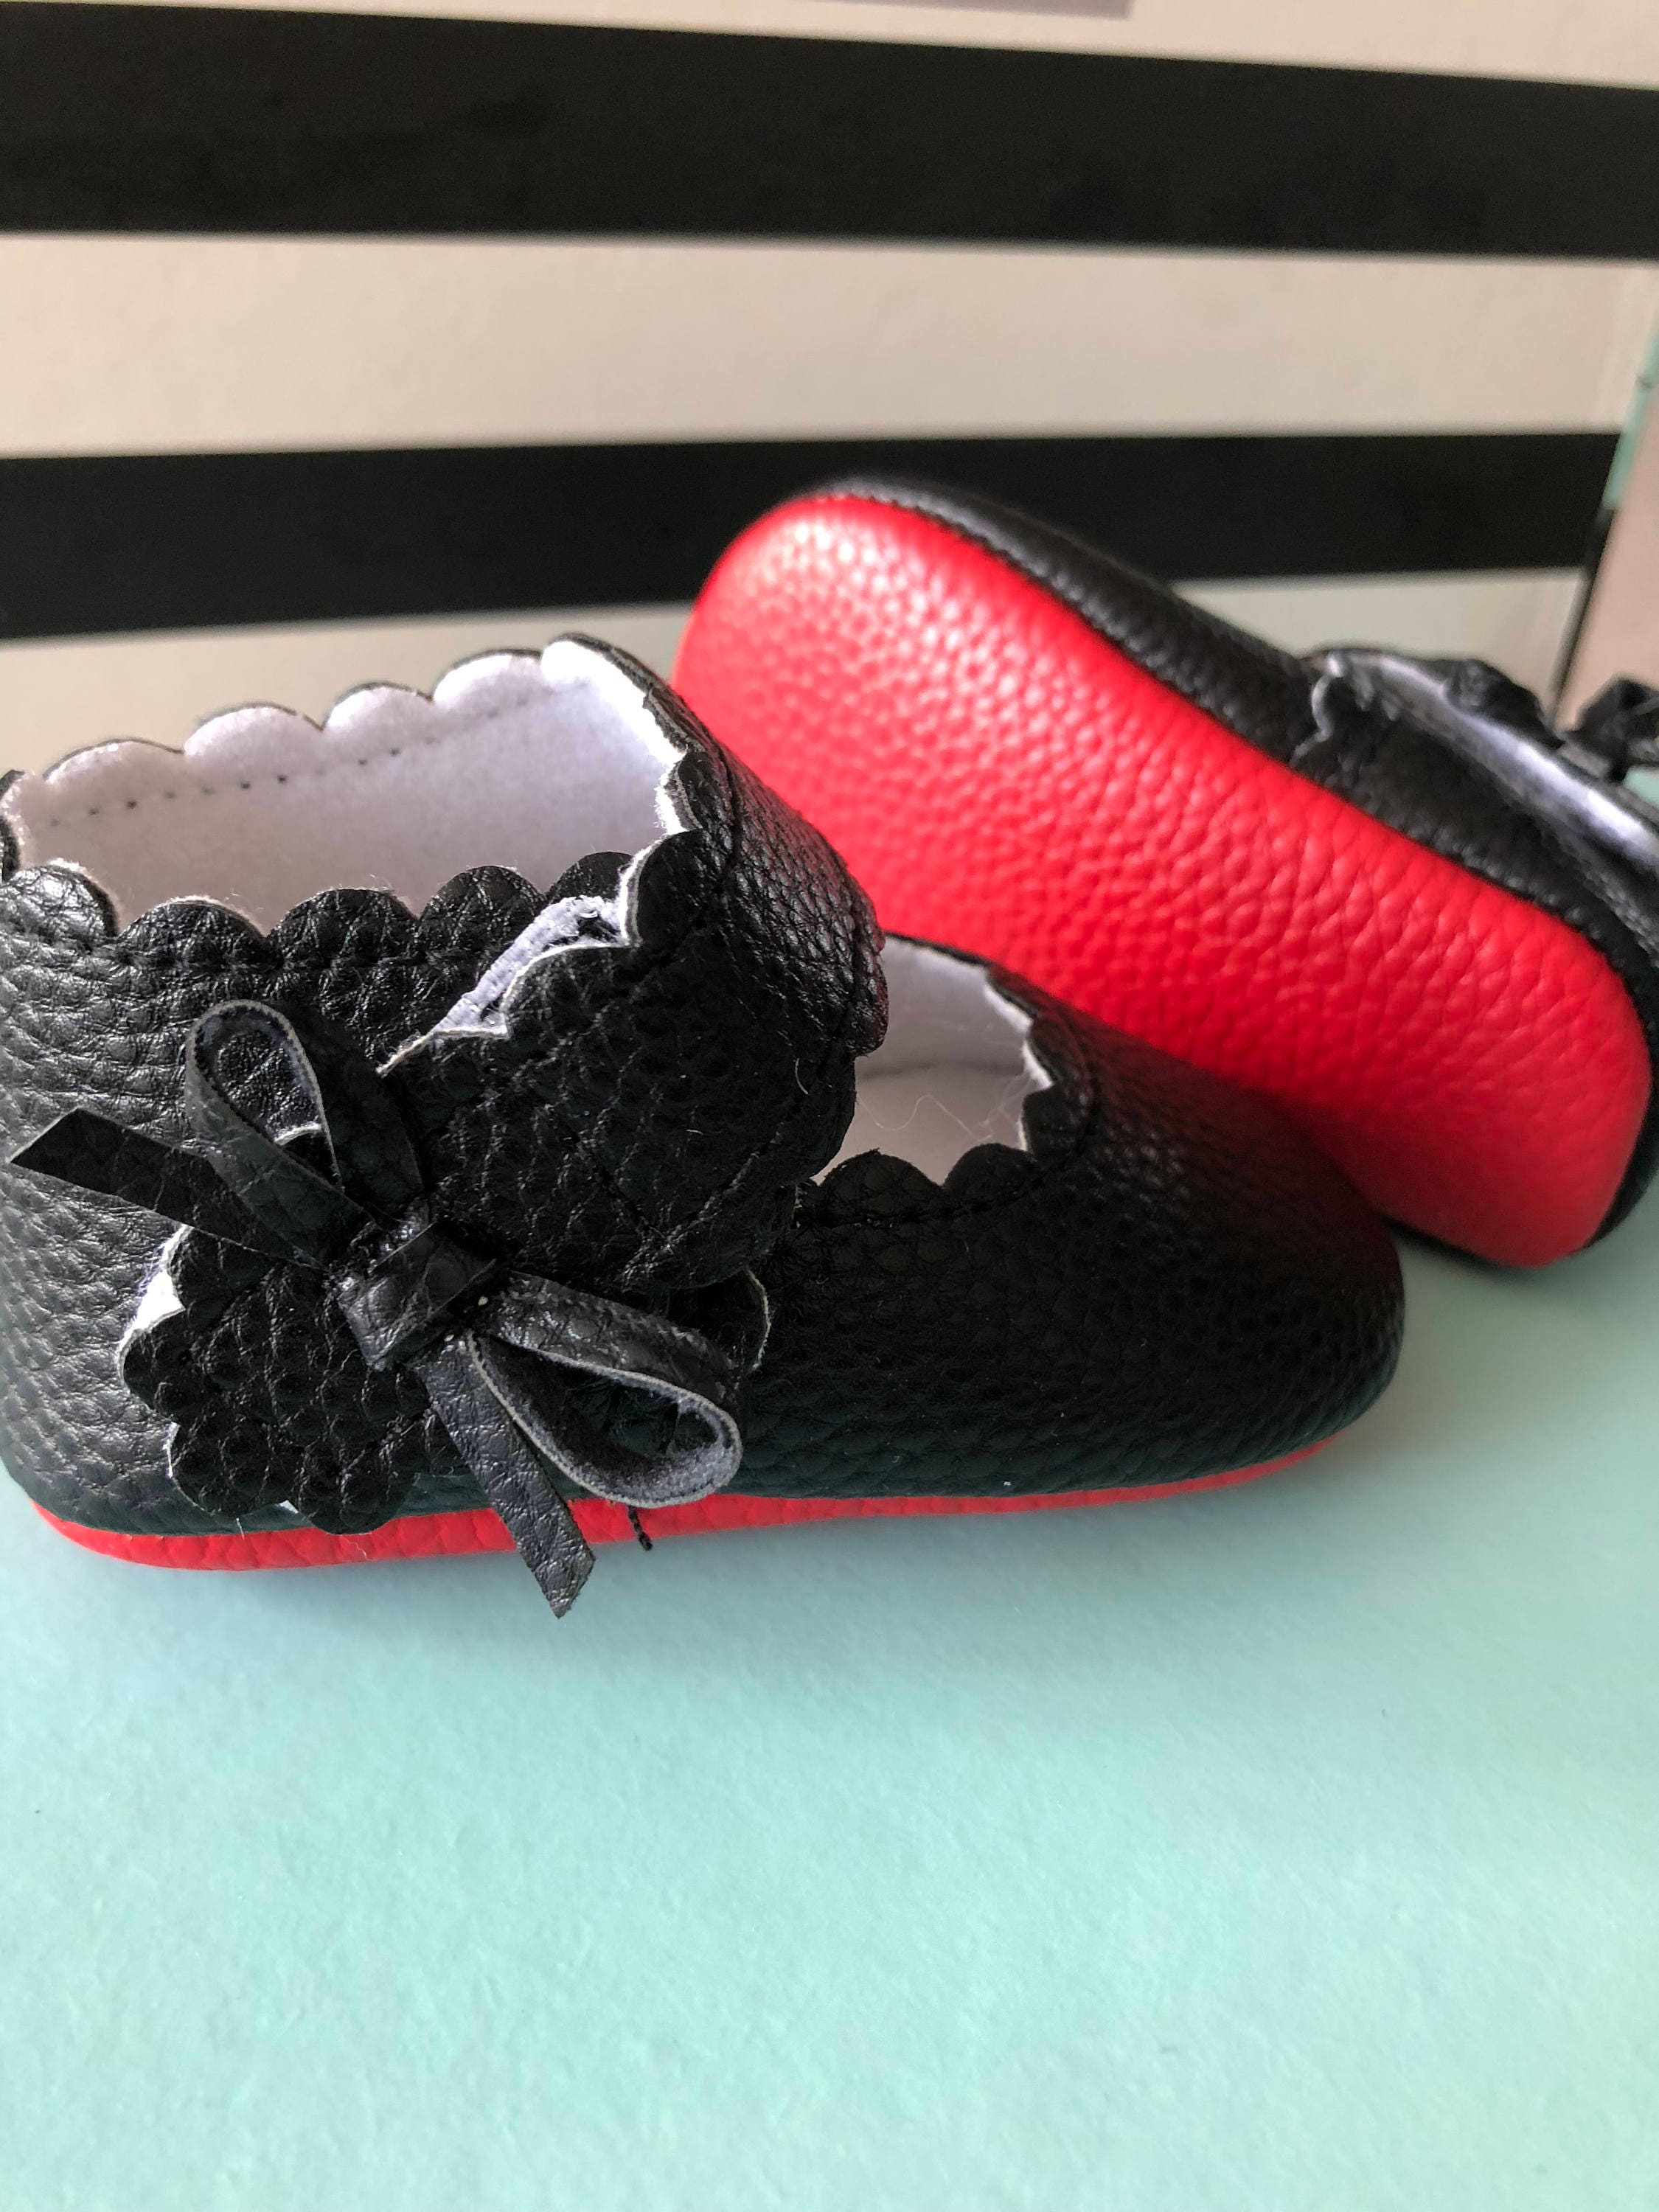 9a3b97506e28 Baby girl shoes baby red bottom shoes red bottom baby girl etsy jpg  2250x3000 Red bottom